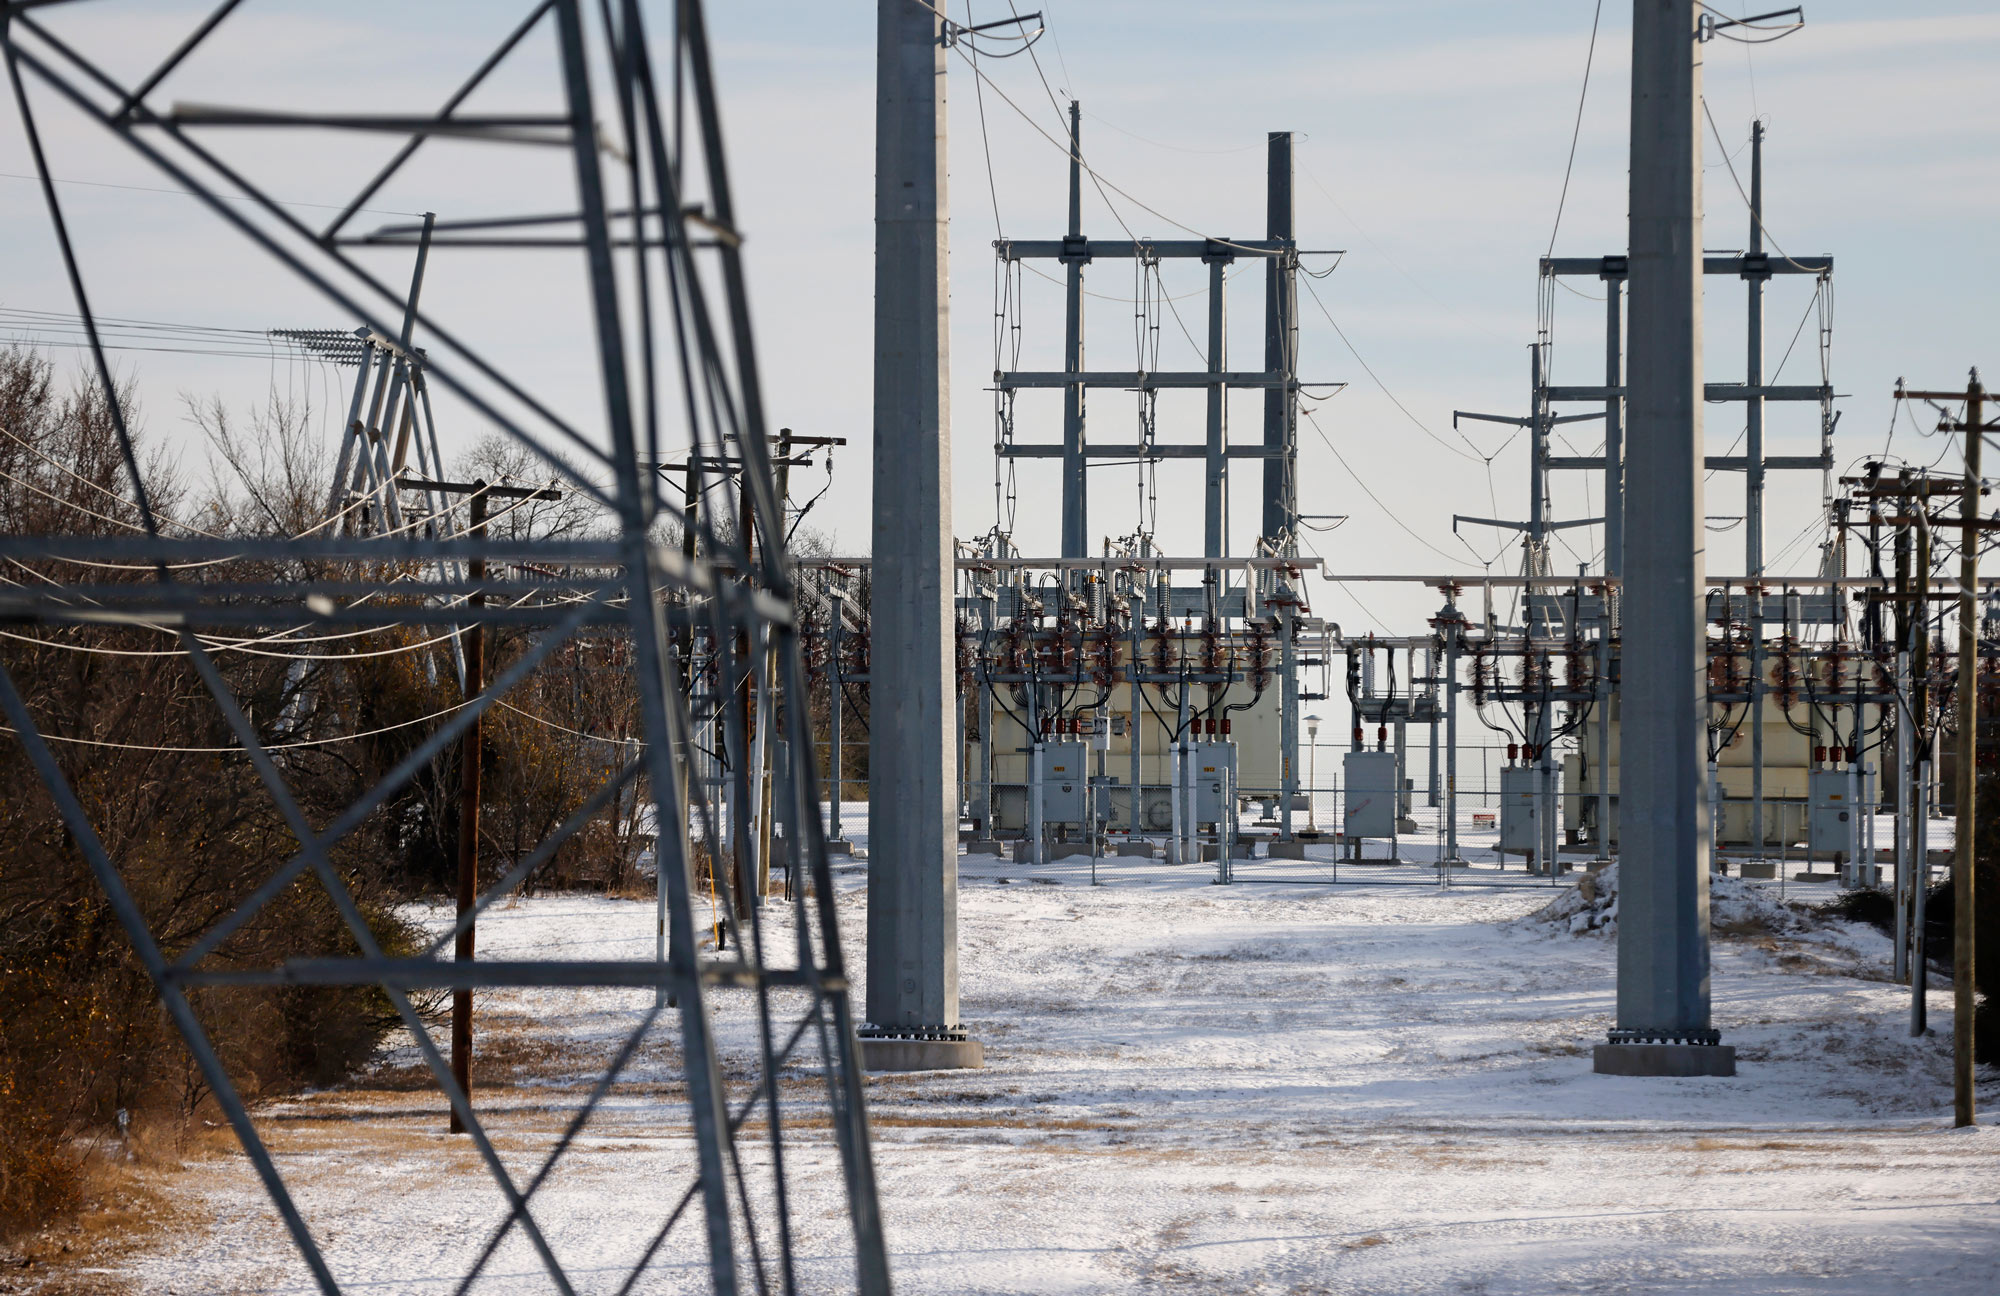 Transmission towers and power lines lead to a substation on February 16 in Fort Worth, Texas.